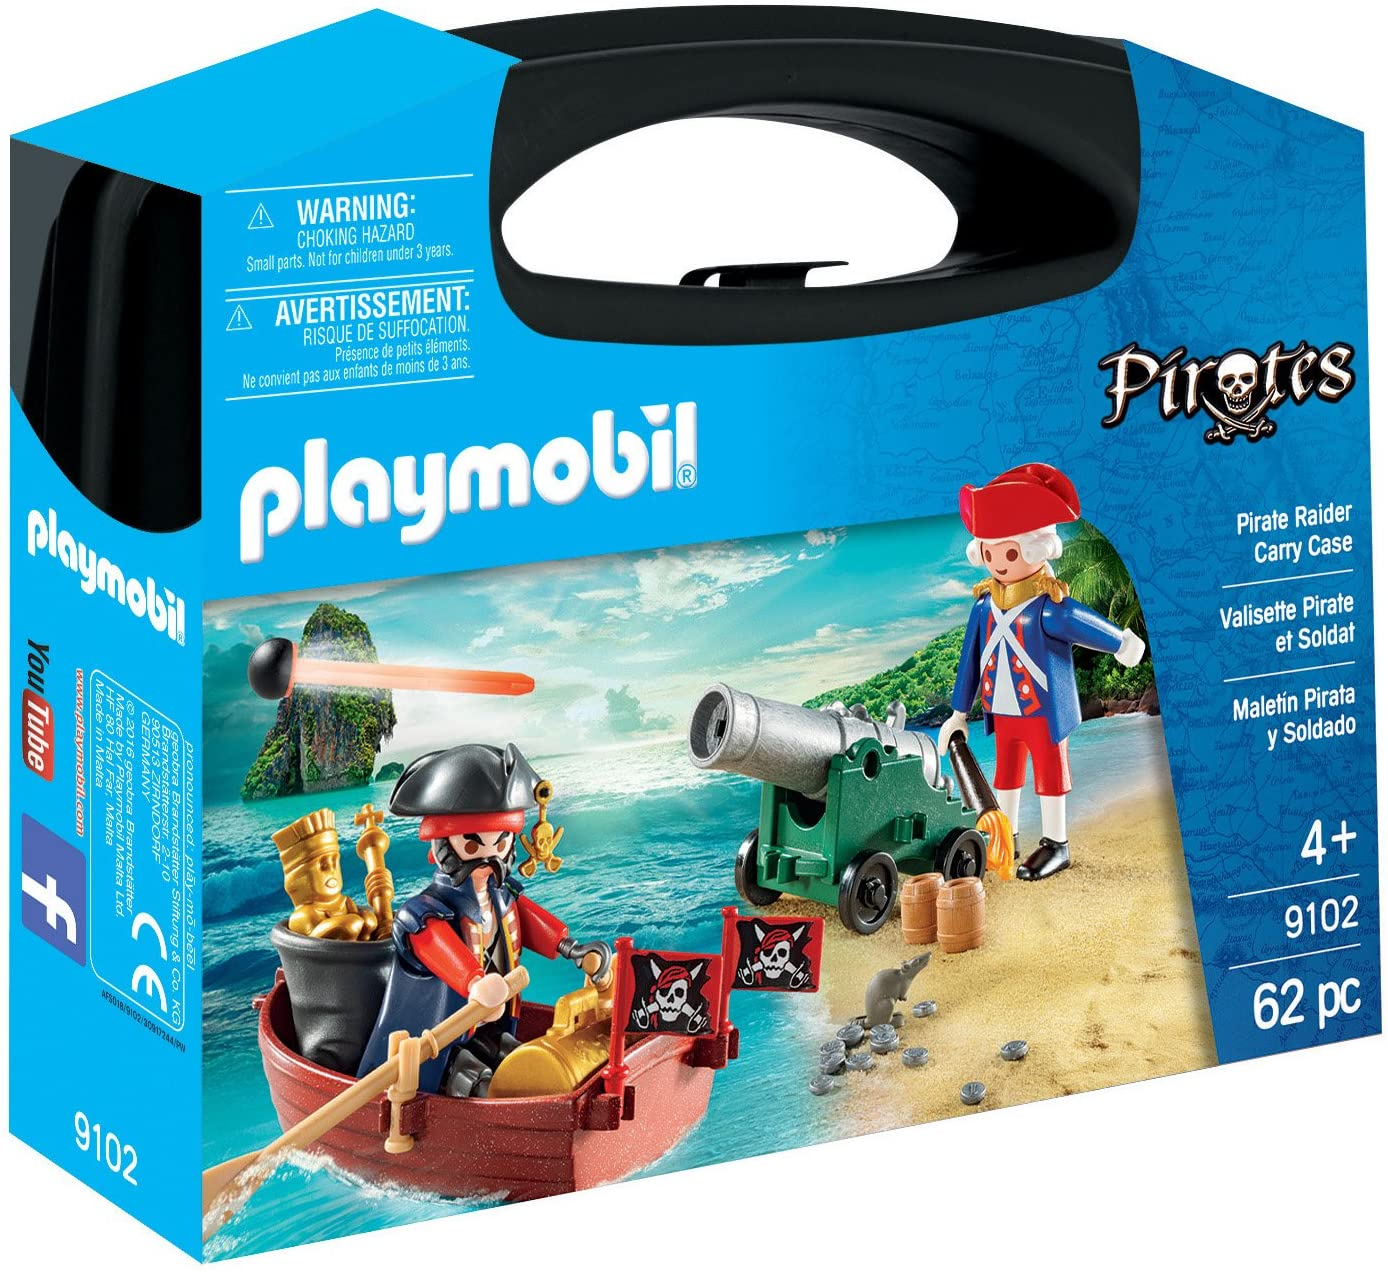 PLAYMOBIL Spring new work Pirate Raider Carry Case New mail order